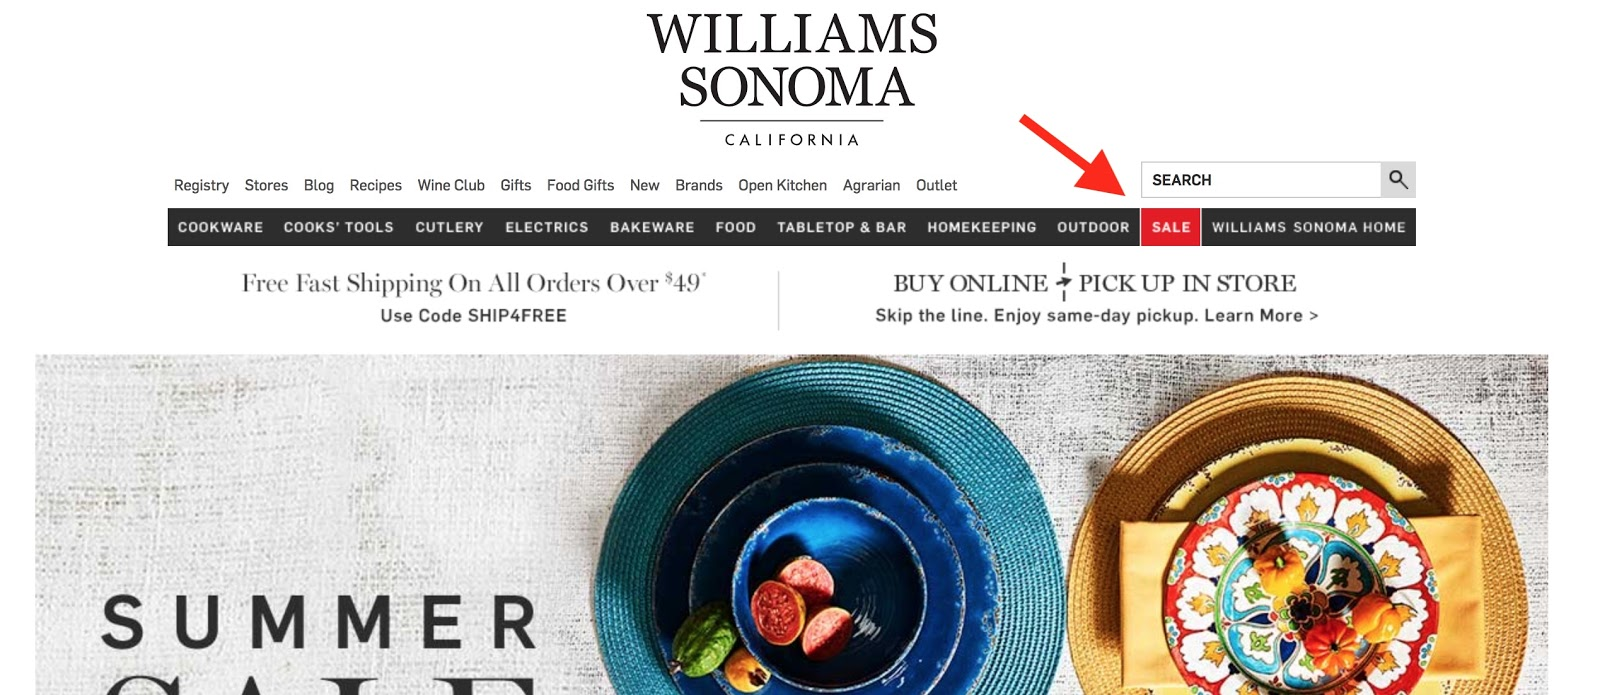 Screenshot showing Williams Sonoma